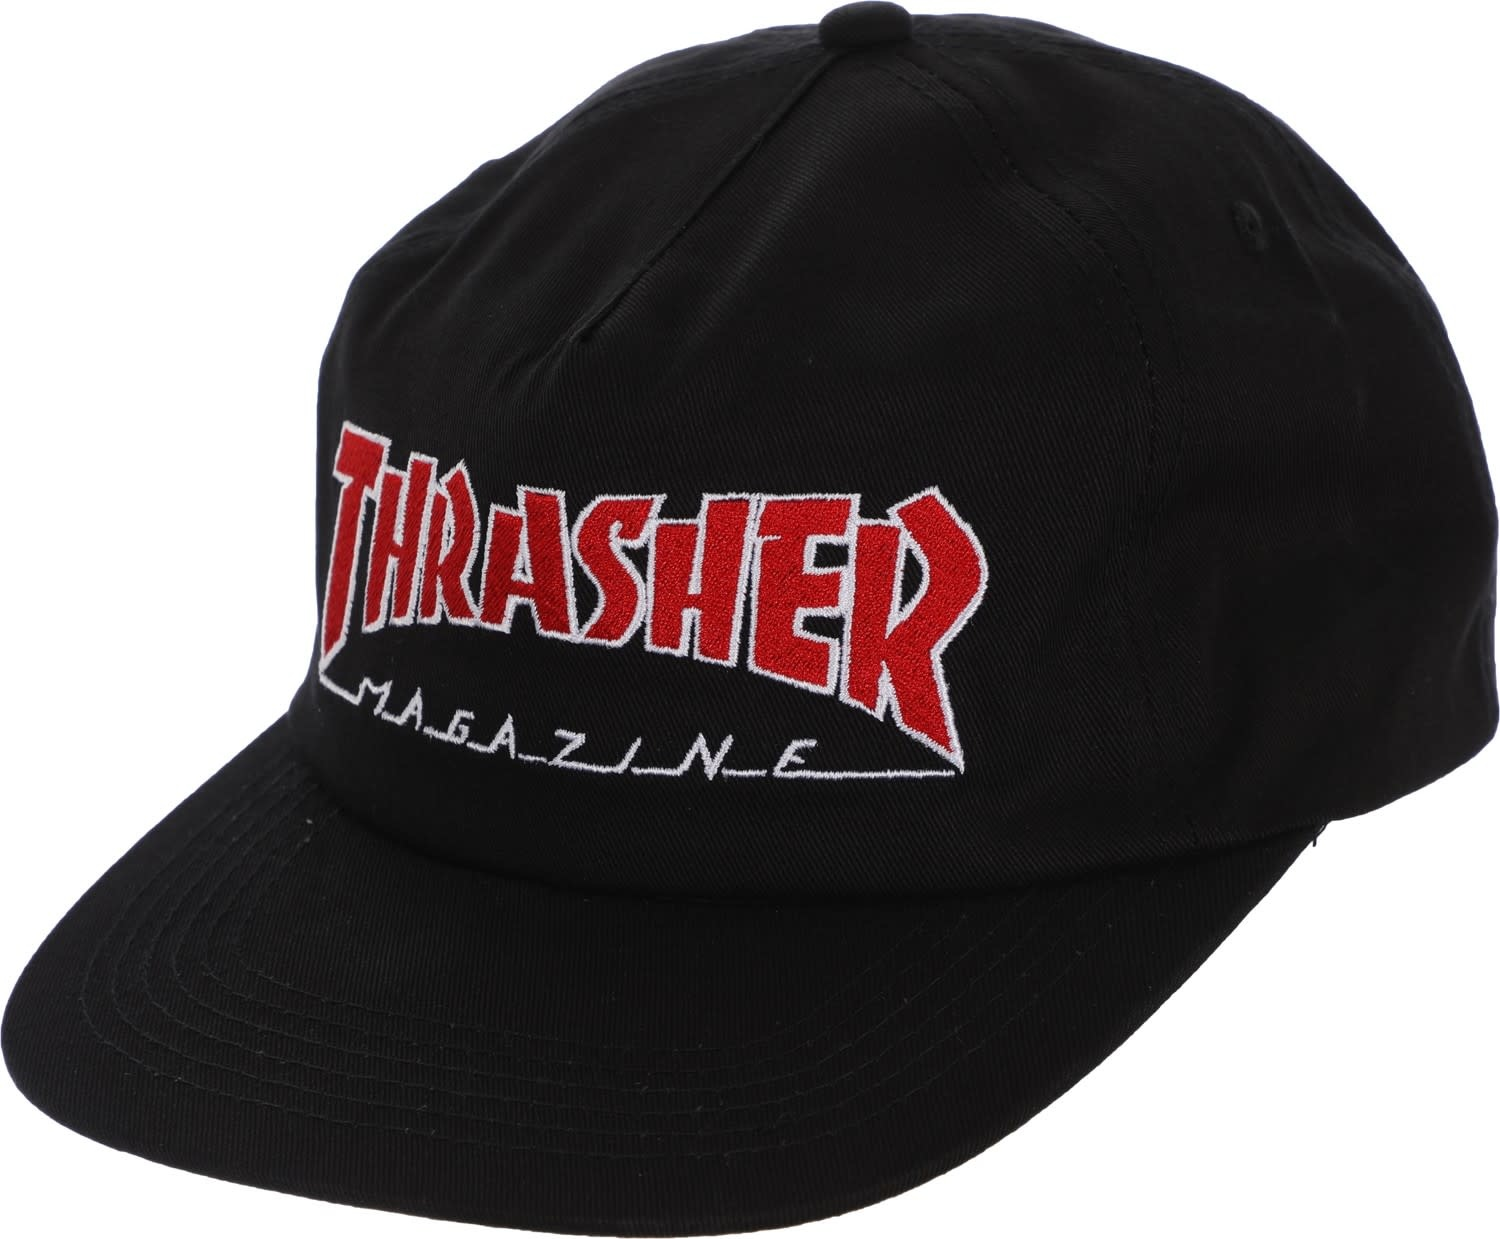 9a85d82a7f7 Thrasher Thrasher Outlined Snapback Hat - Black - Attic Skate   Snow ...